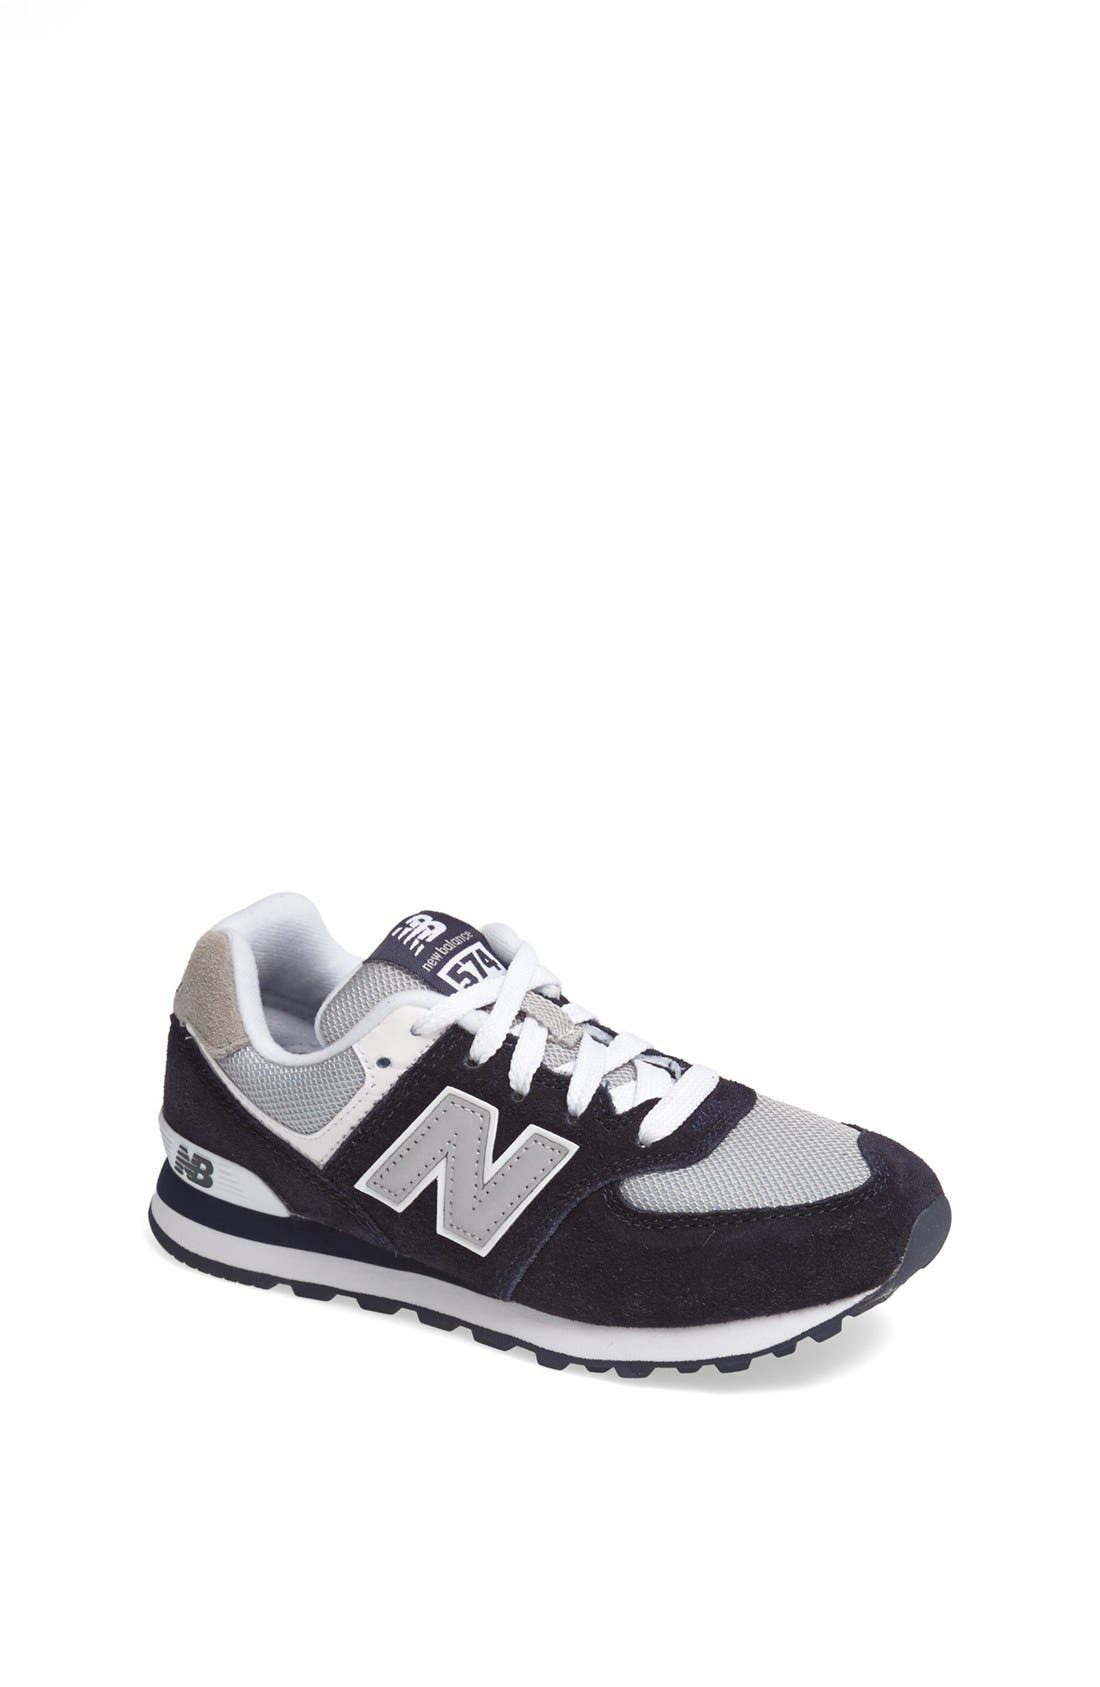 Alternate Image 1 Selected - New Balance '574 Classic' Sneaker (Toddler & Little Kid)